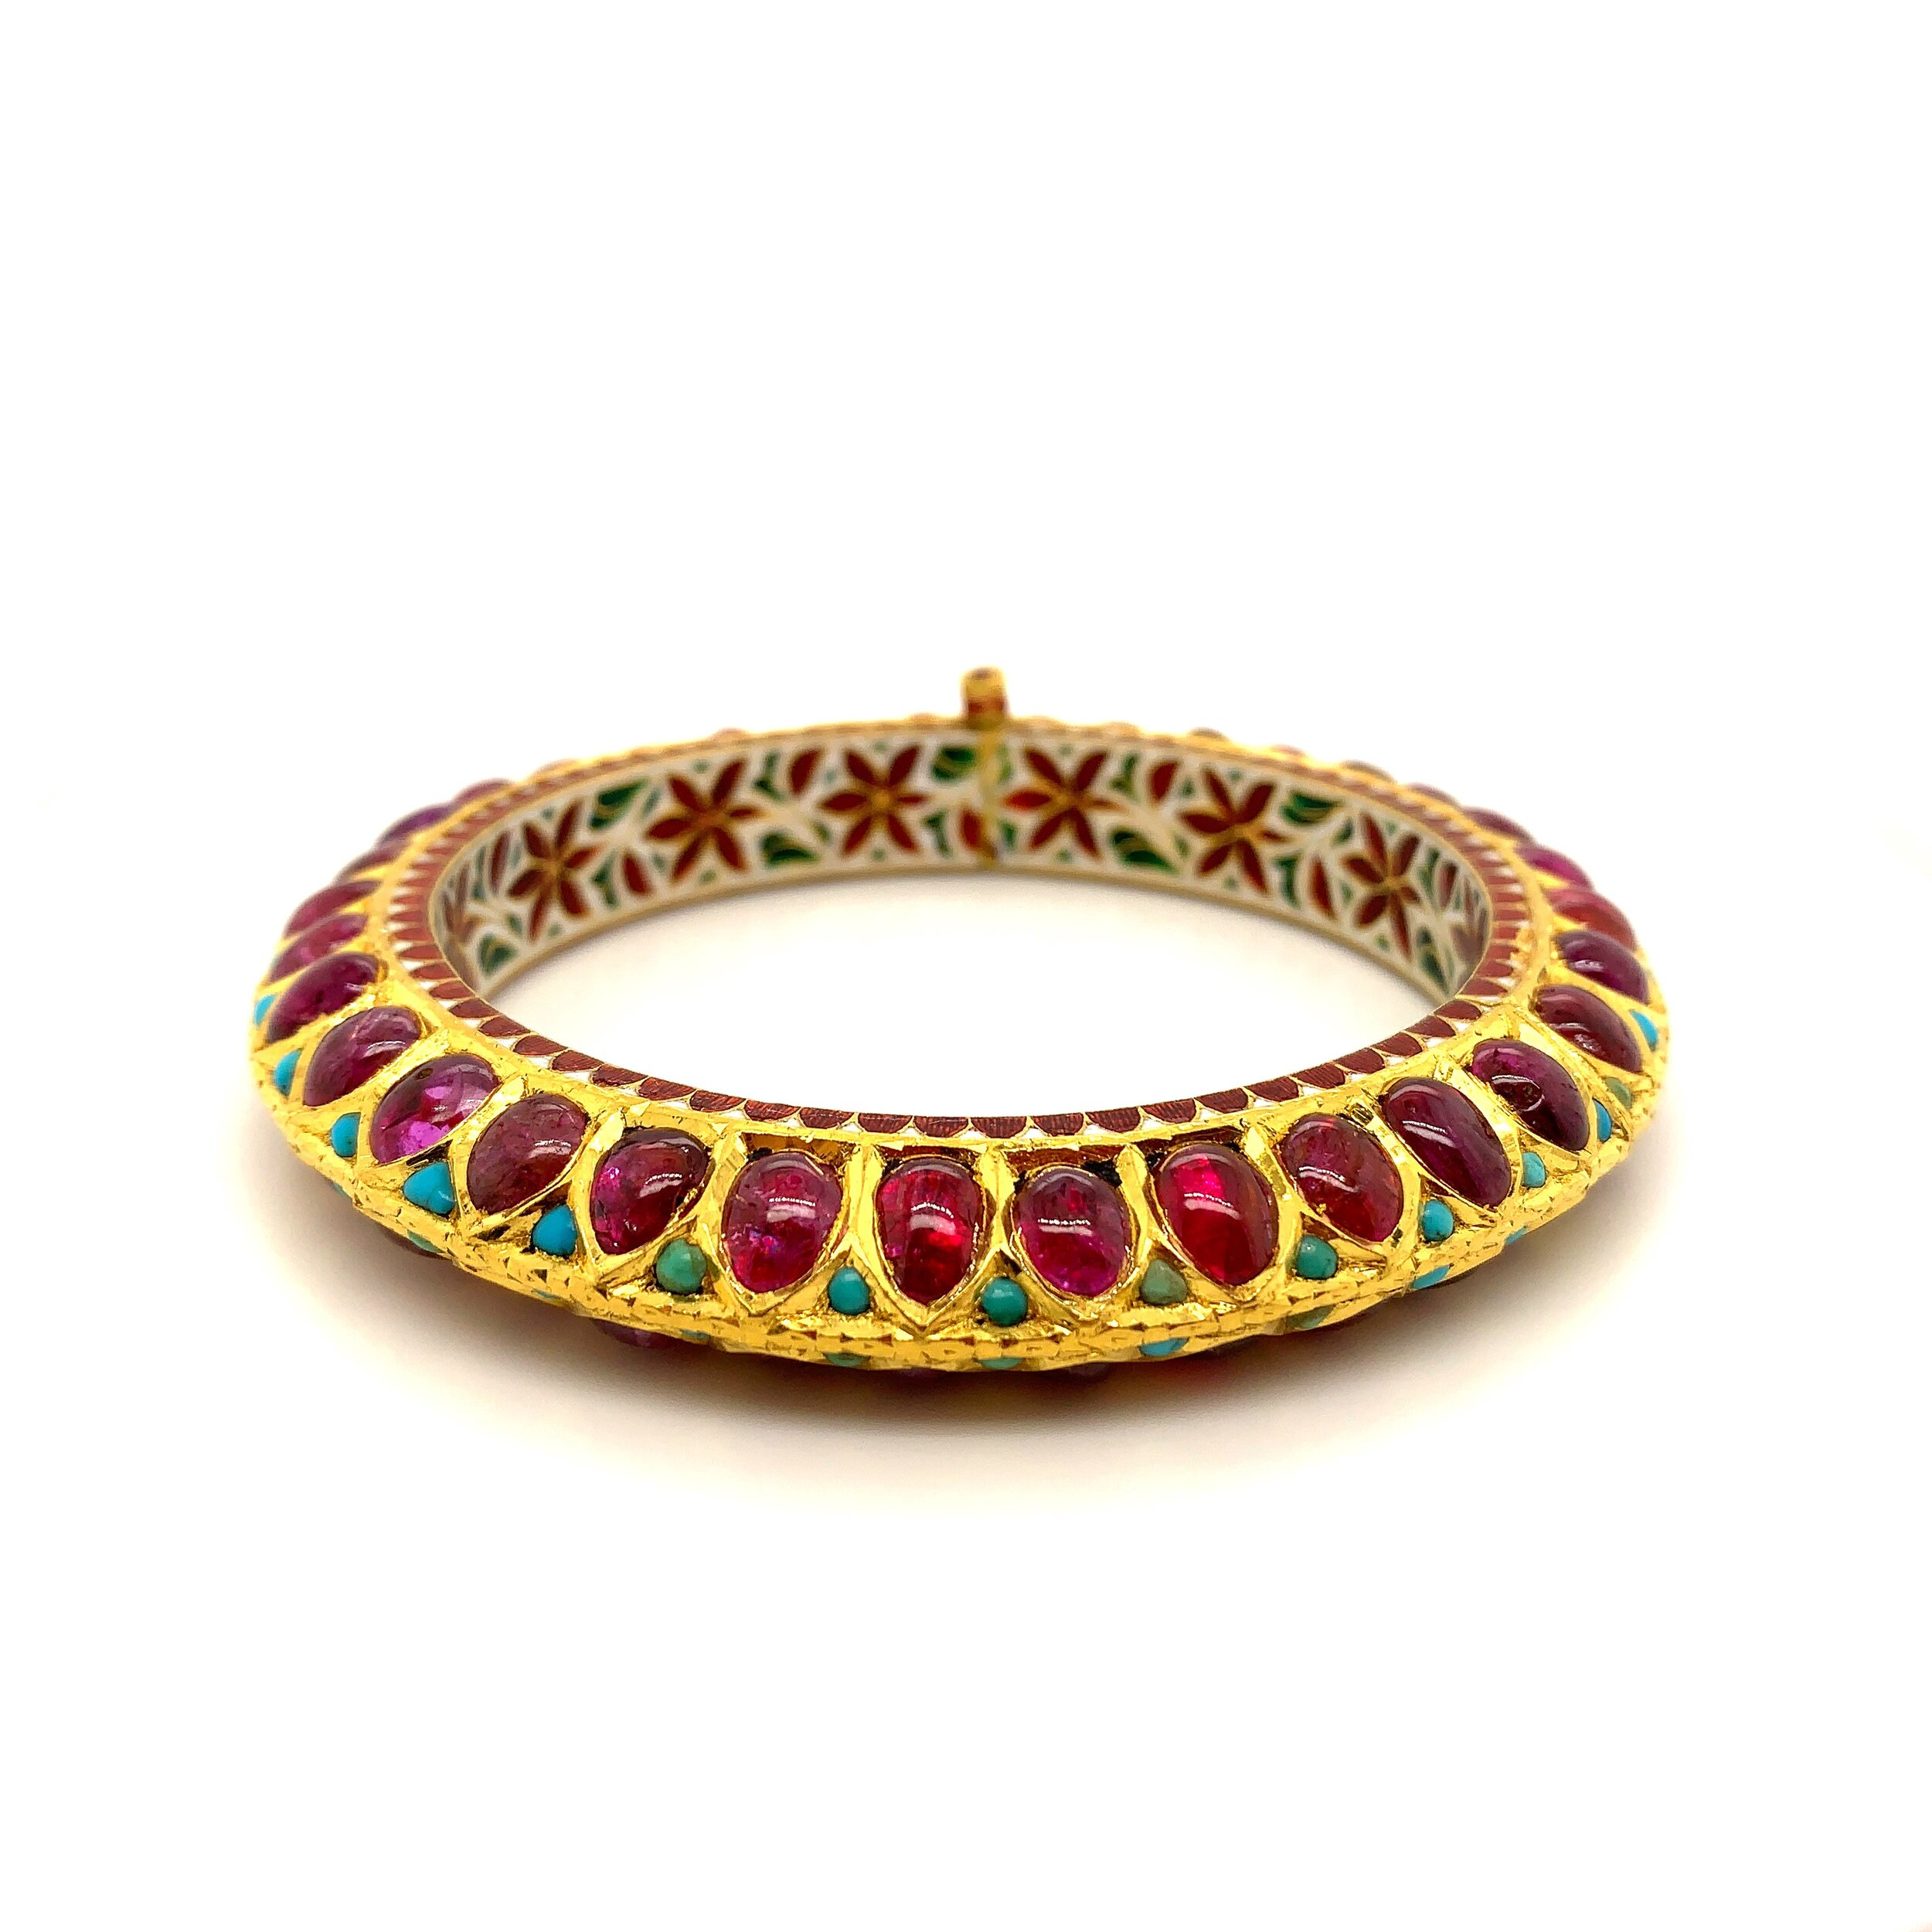 26ct Ruby Traditional Indian Bangle with enamel in 22 Karat Gold  Est. US$ 2,800-3,500